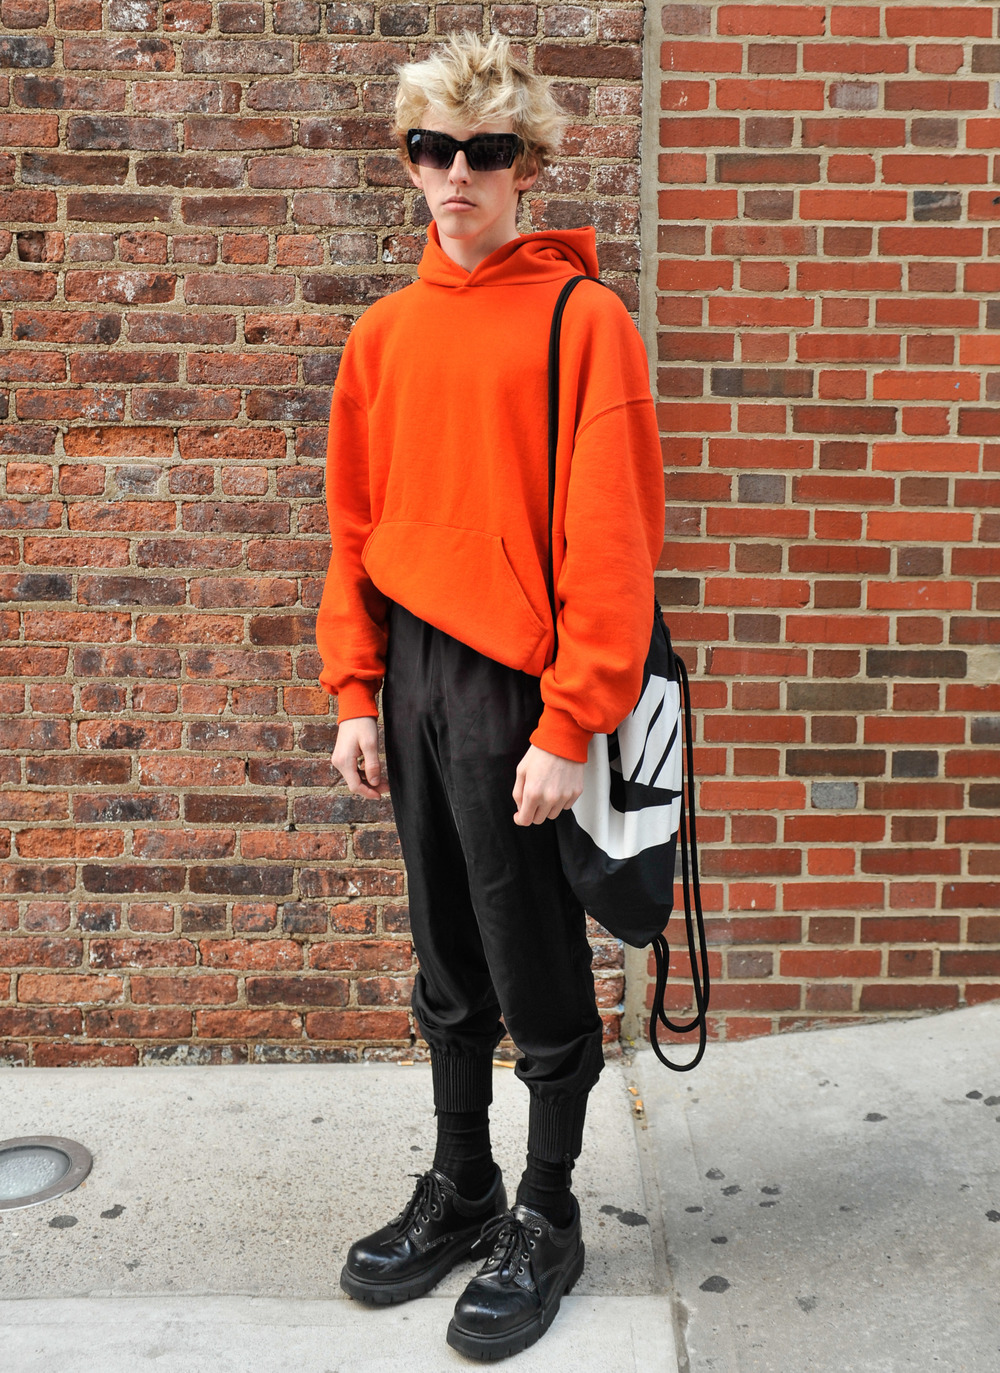 StreetStyle_NYFW_SS15_by_LeandroJusten_15.jpg